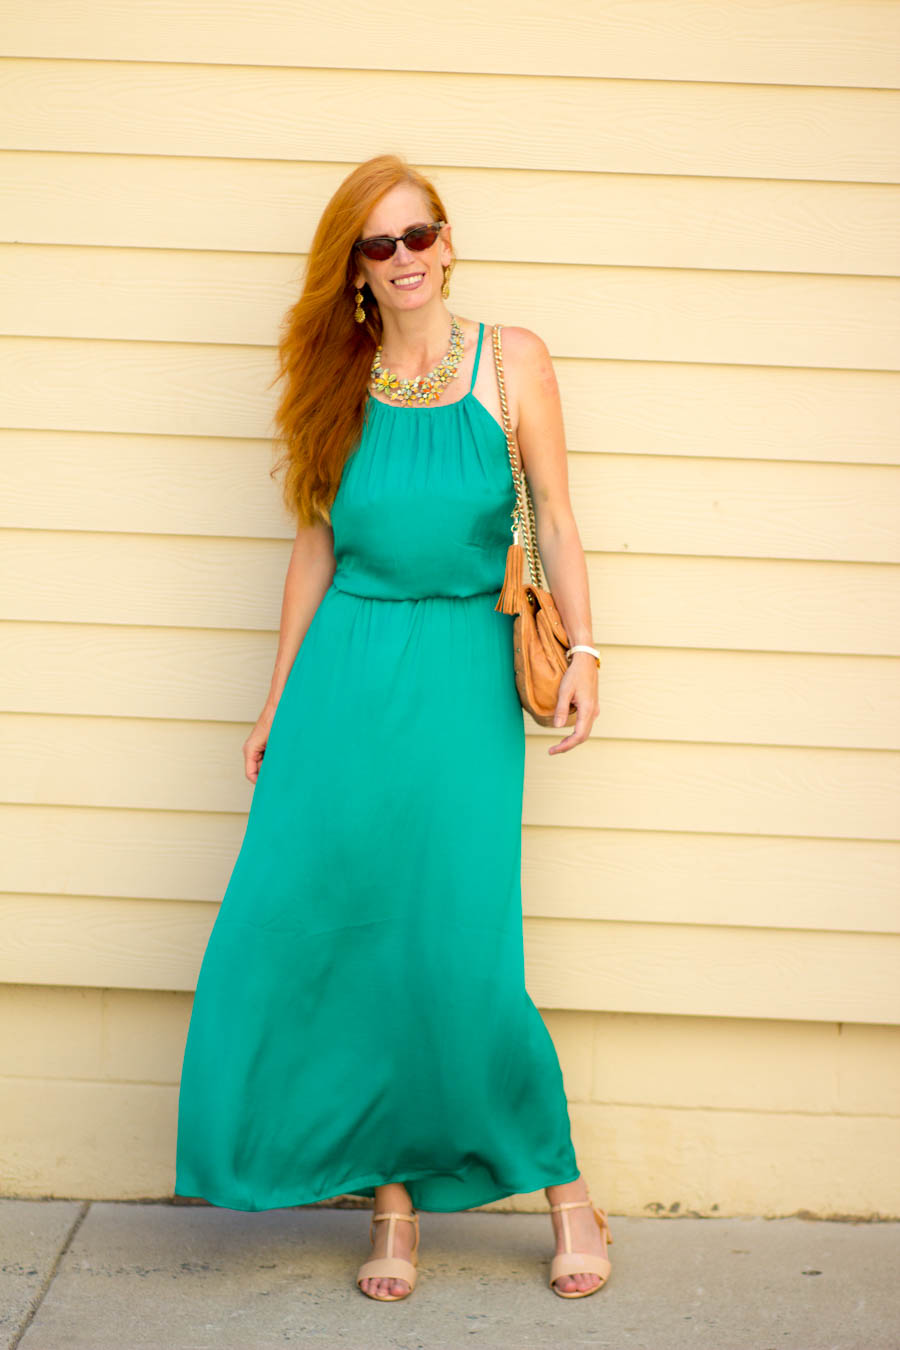 What color jewelry goes with green dress